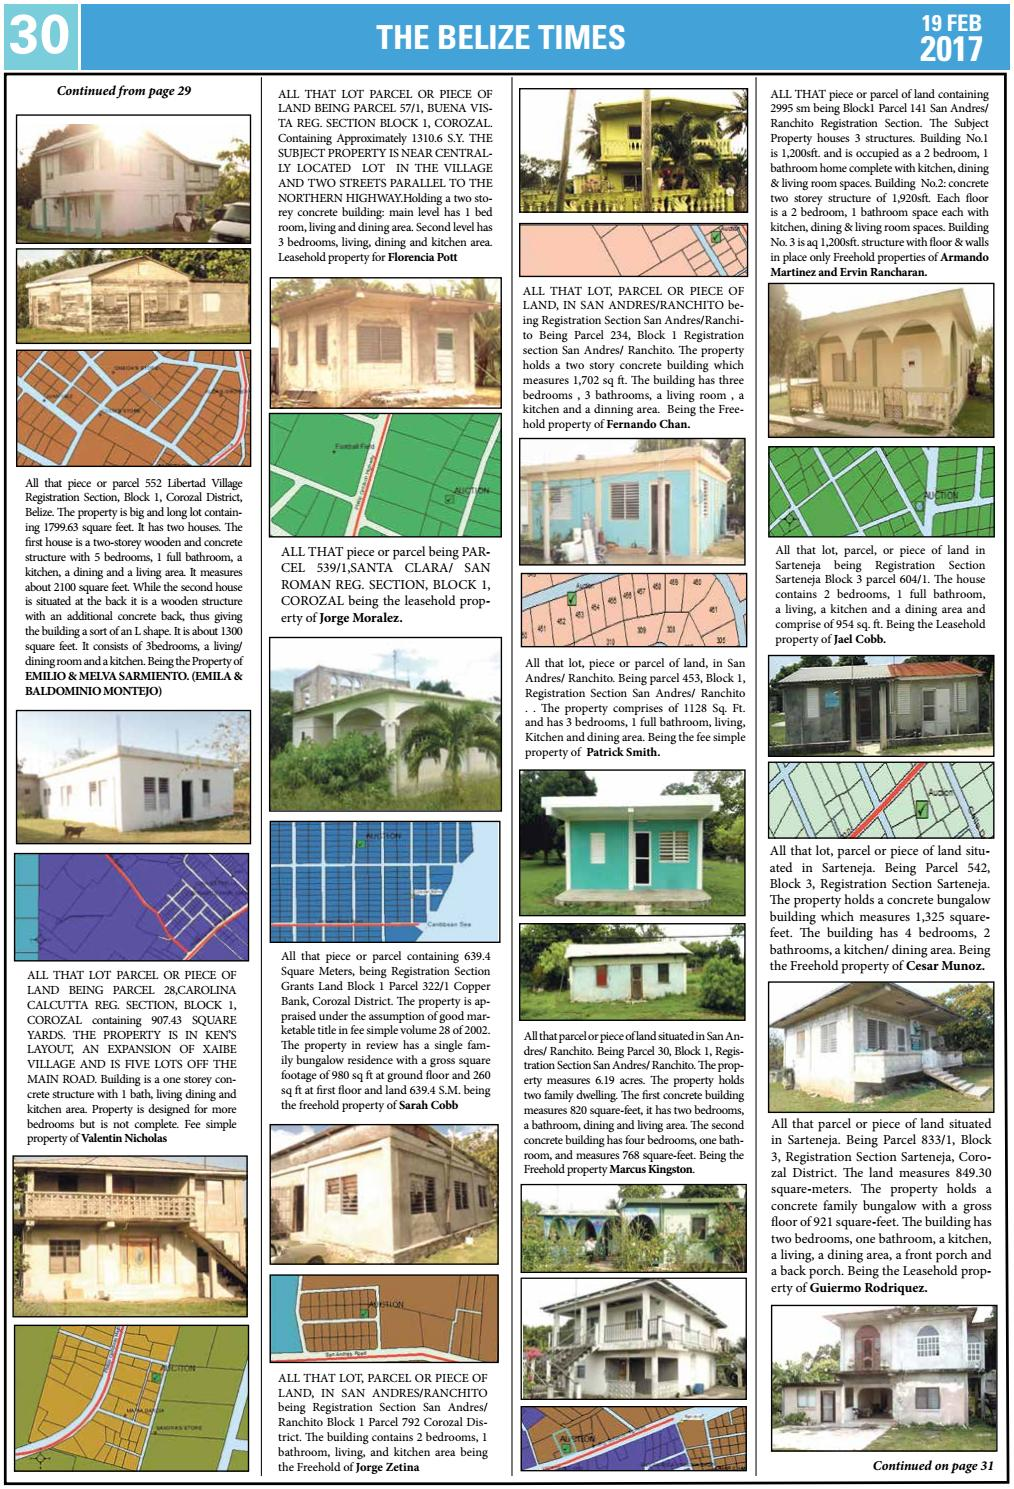 Belize Times February 19, 2017 by Belize Times Press - issuu